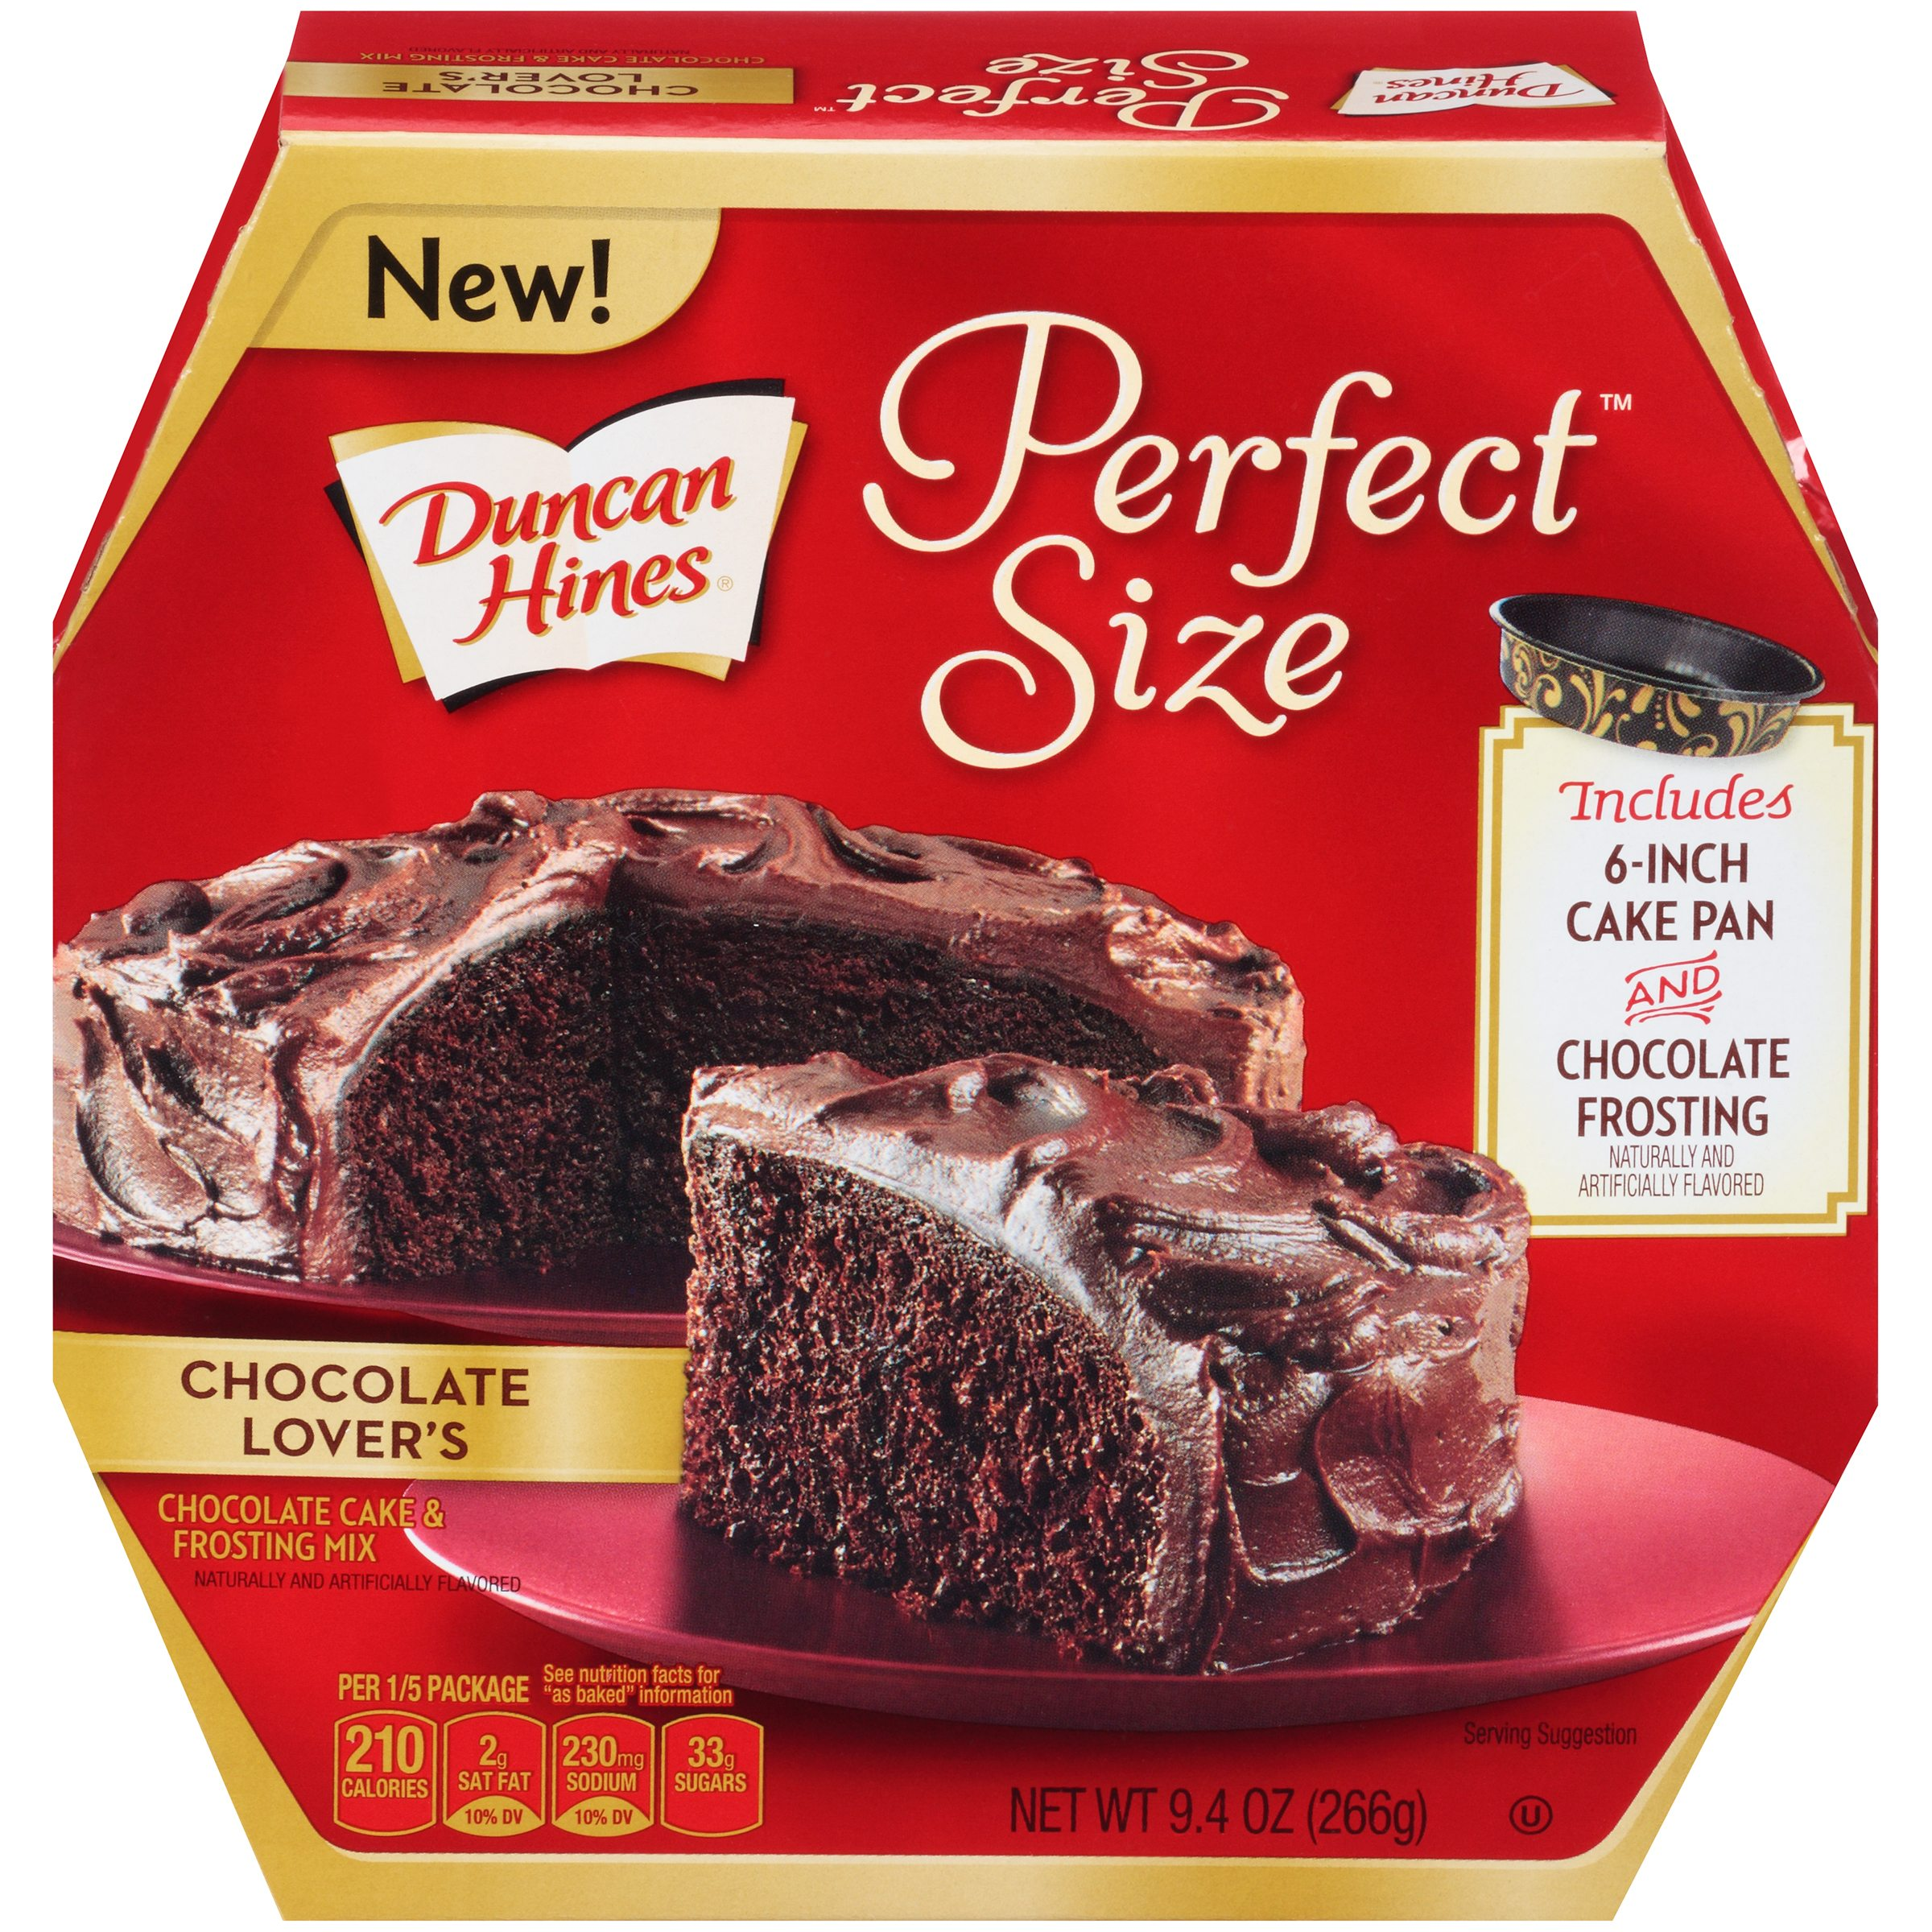 (2 Pack) Duncan Hines Perfect Size Cake Mix Chocolate Lover's, 9.4 OZ